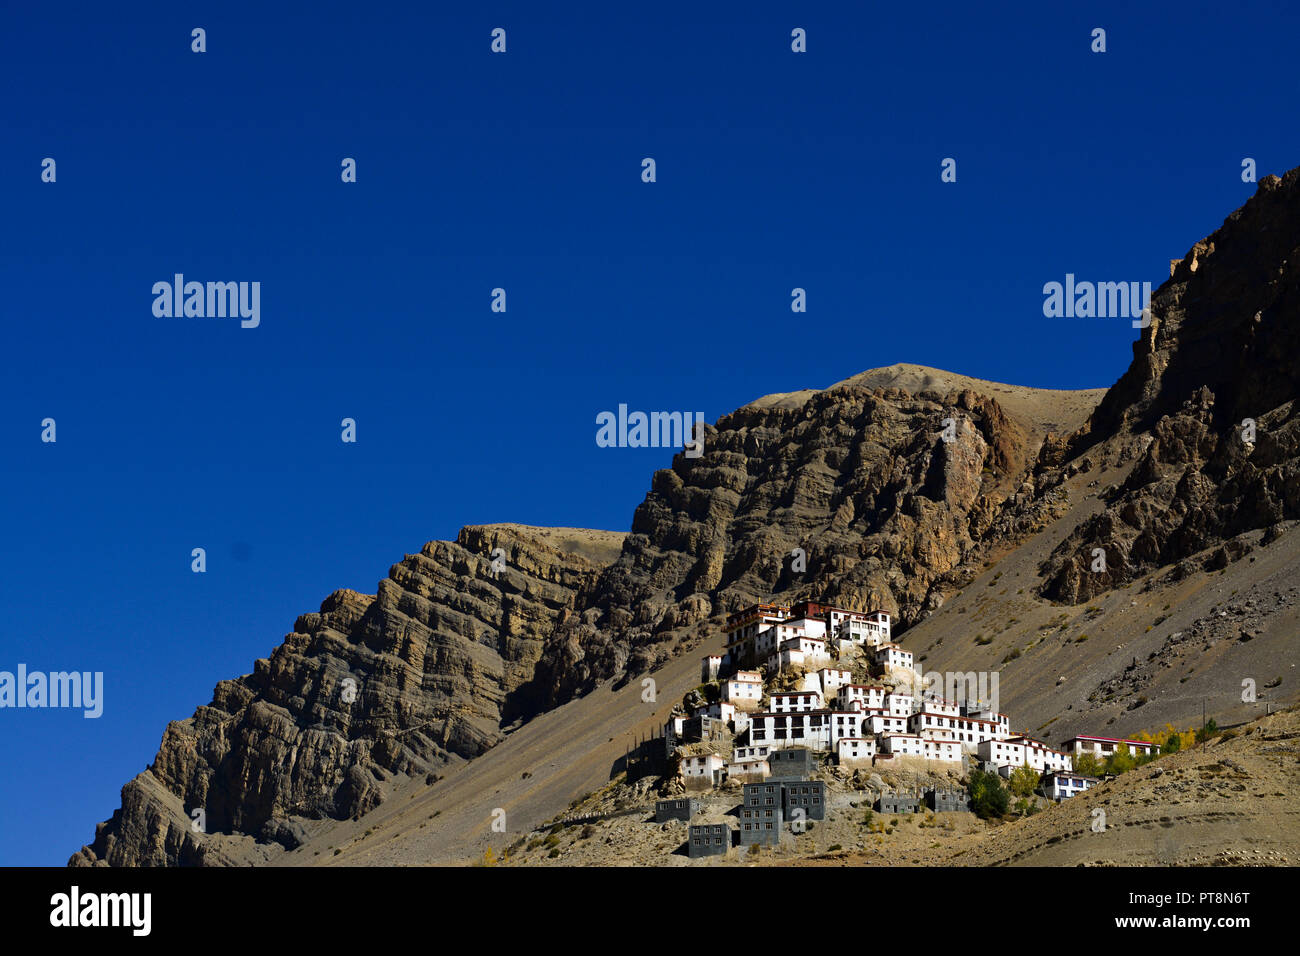 Key Monastery in Spiti Valley, Himachal Pradesh, India. It is the highest monastery in the Spiti region. - Stock Image